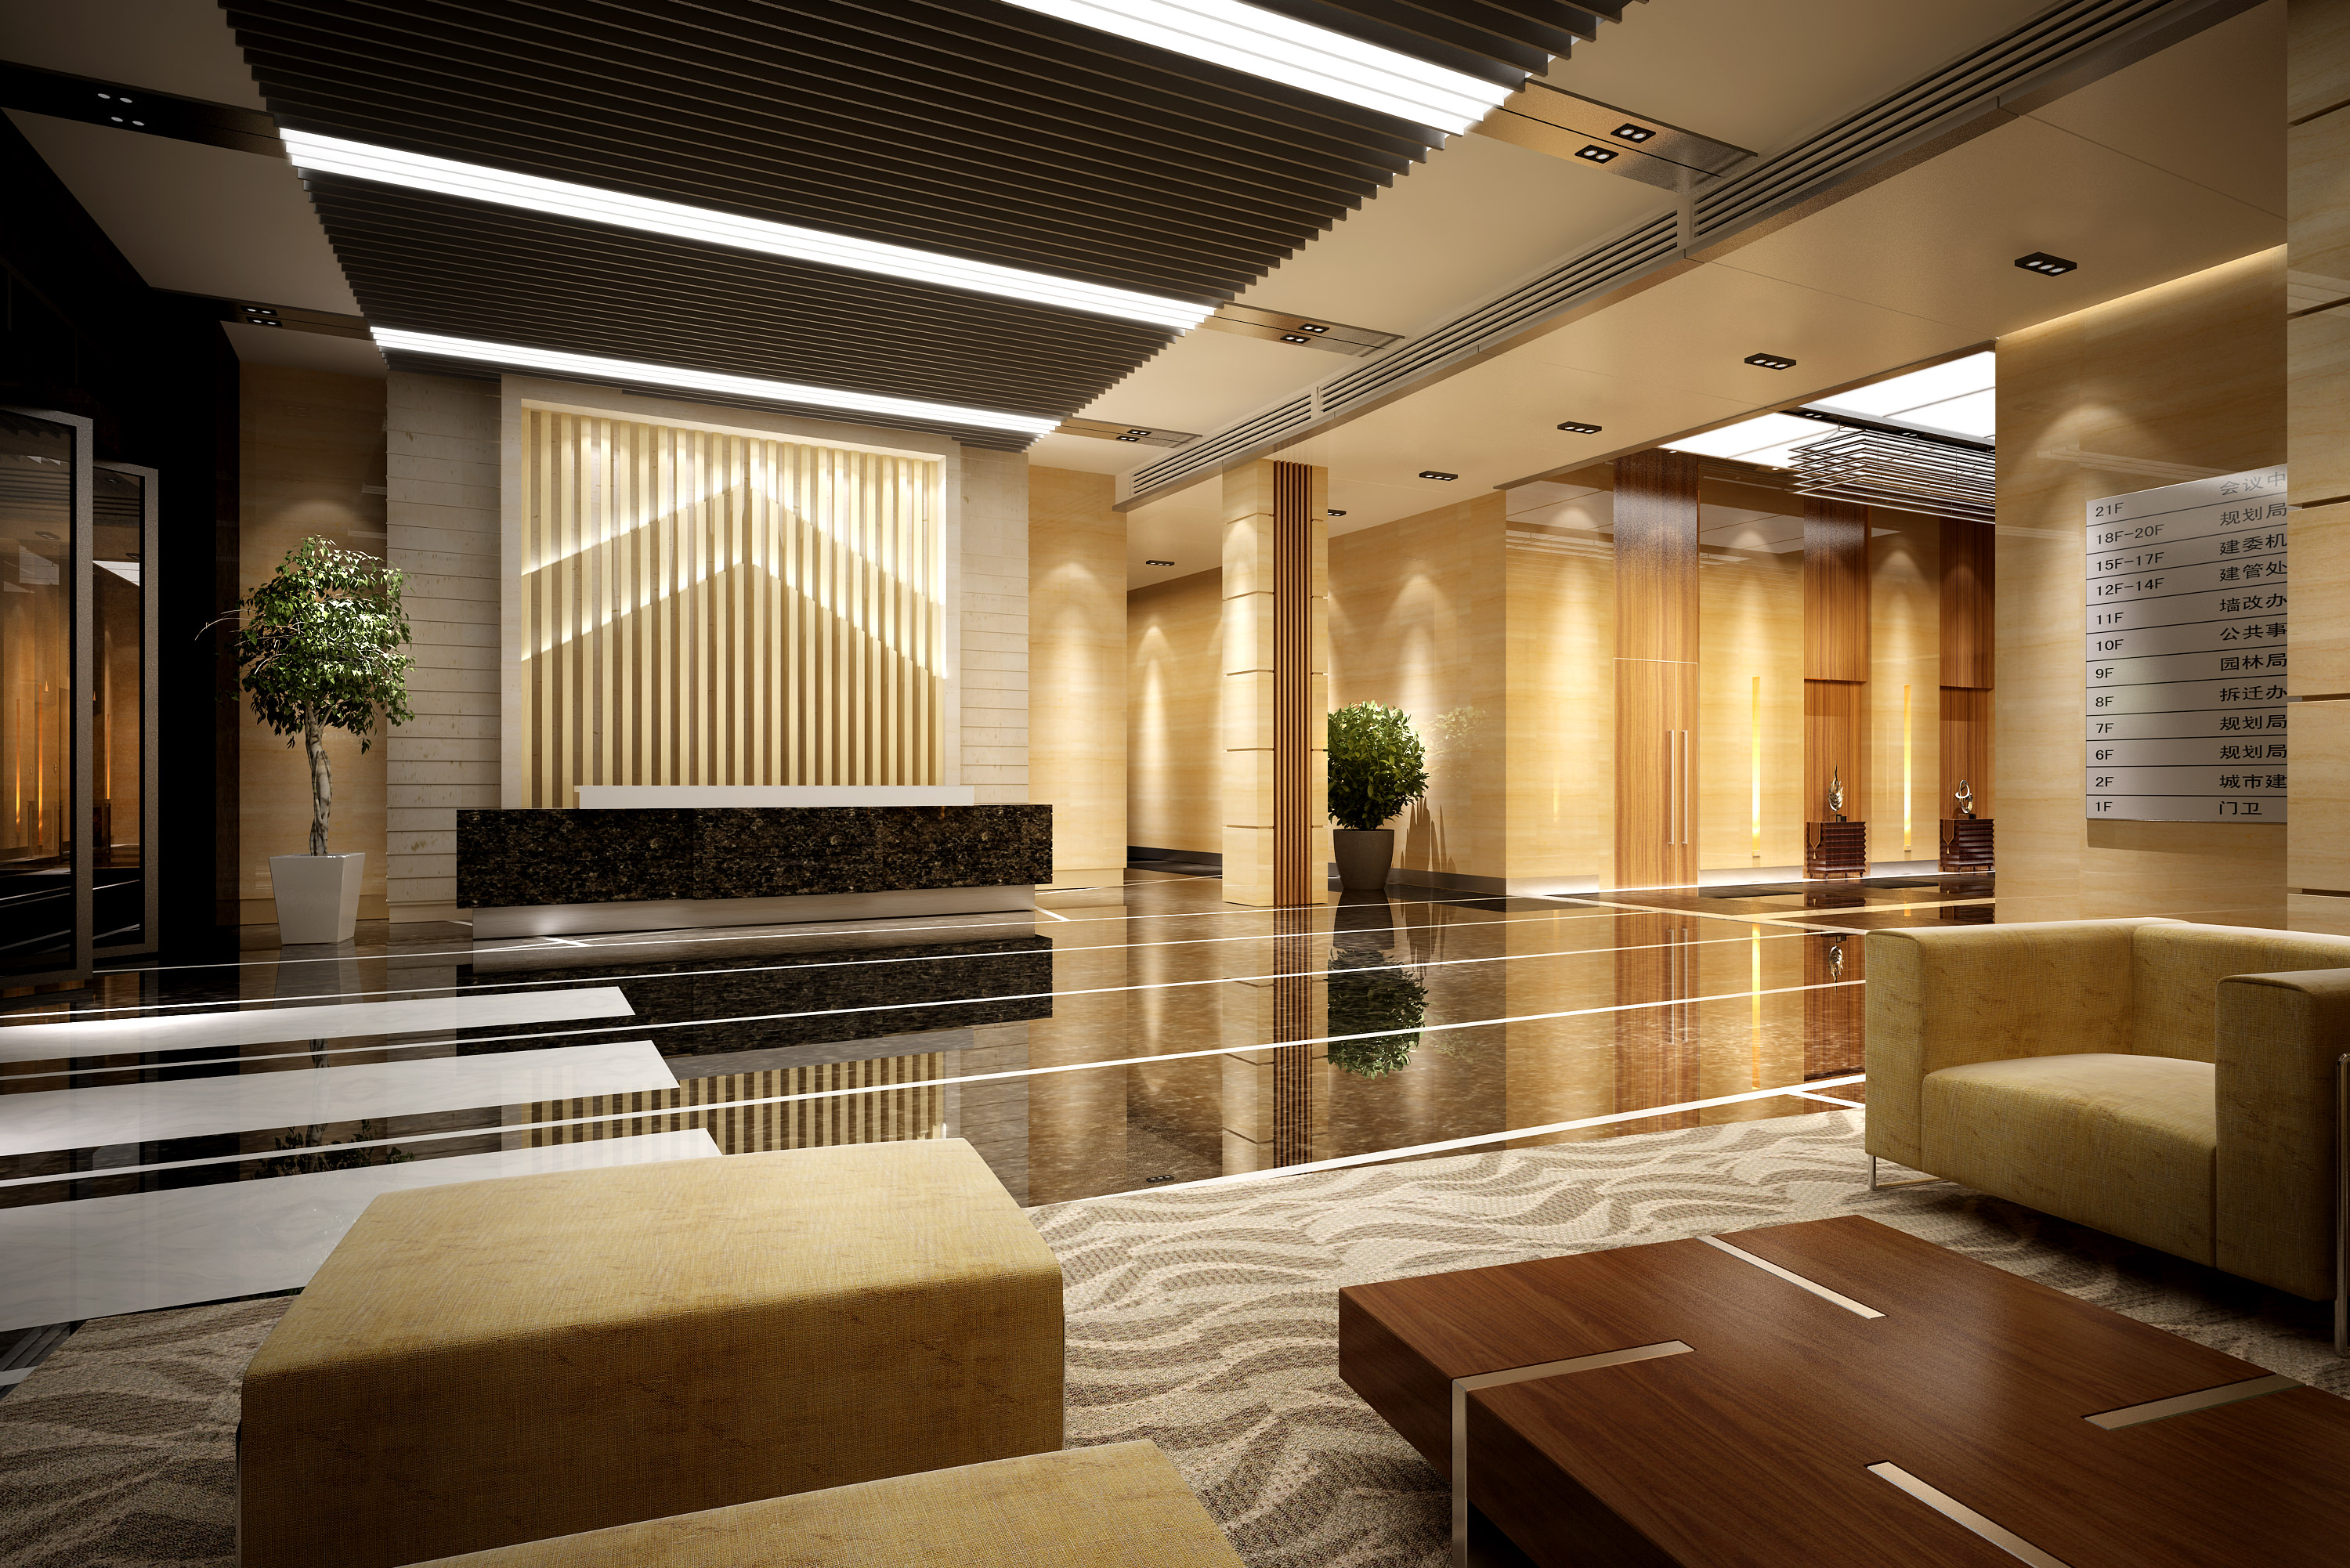 Lobby Foyer Area : Lobby with designer tea table and couch d model max